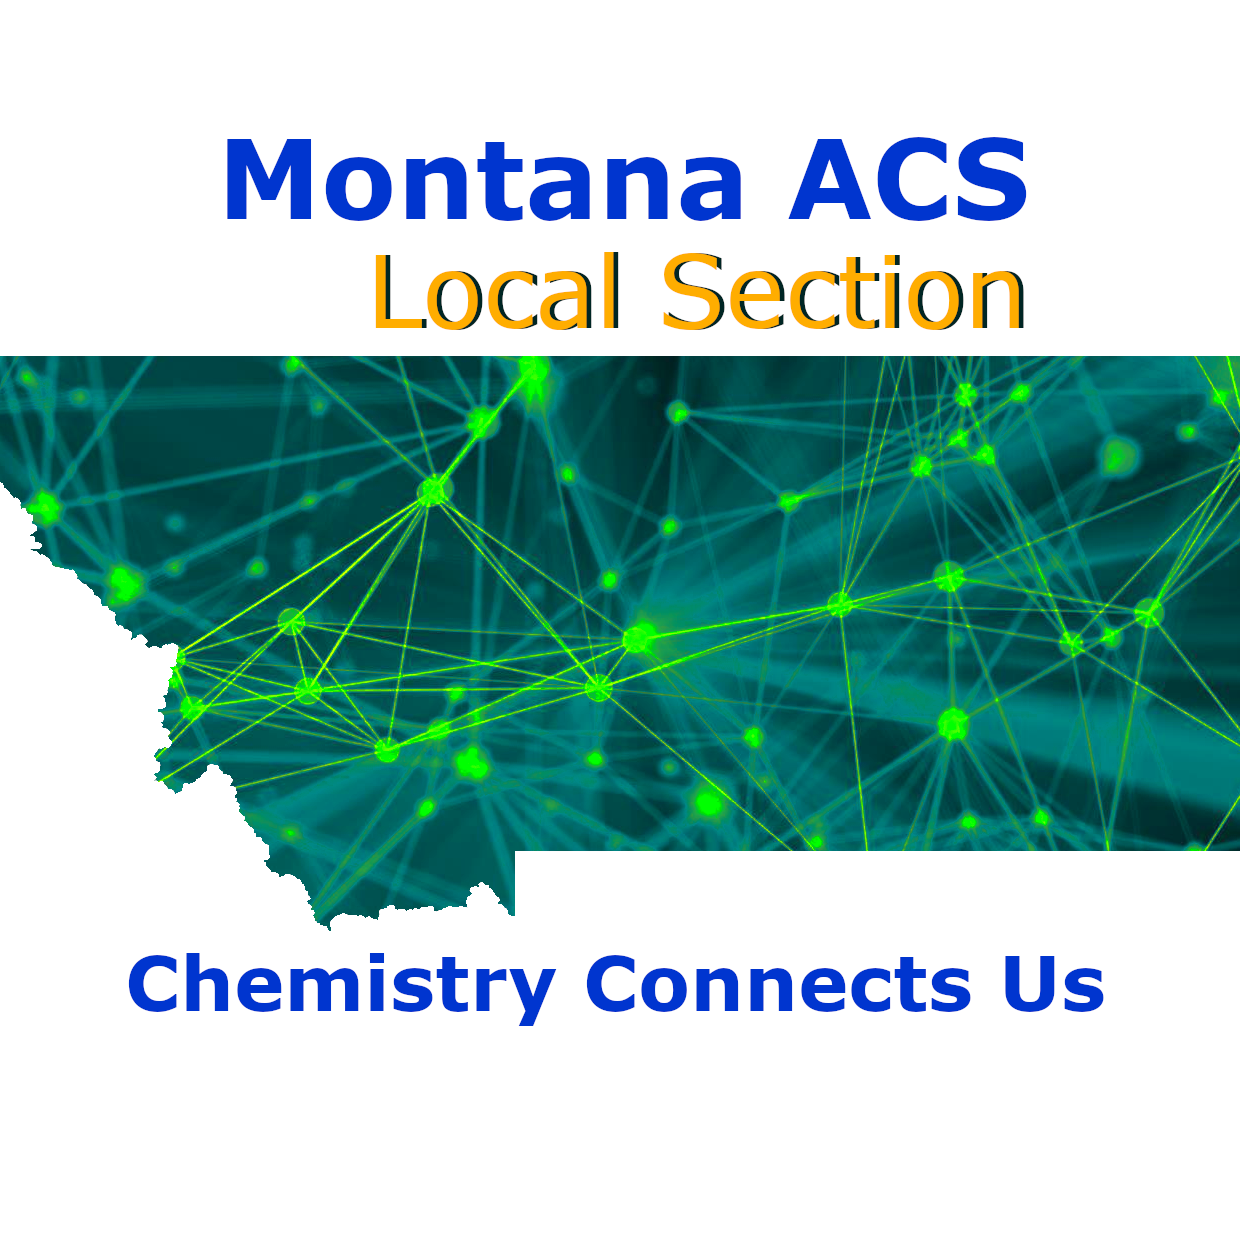 Montana ACS Local Section